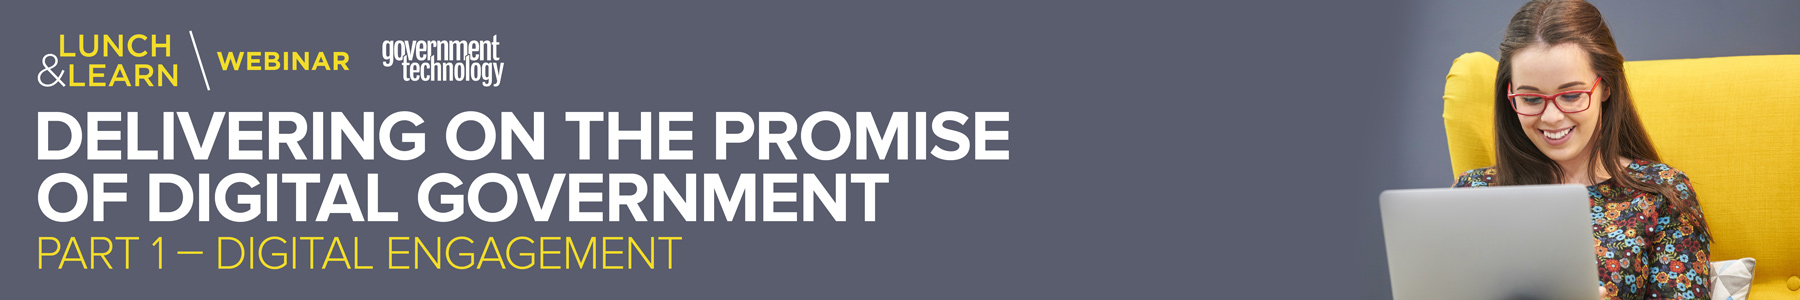 Delivering on the Promise of Digital Government: Part 1 - Digital Engagement